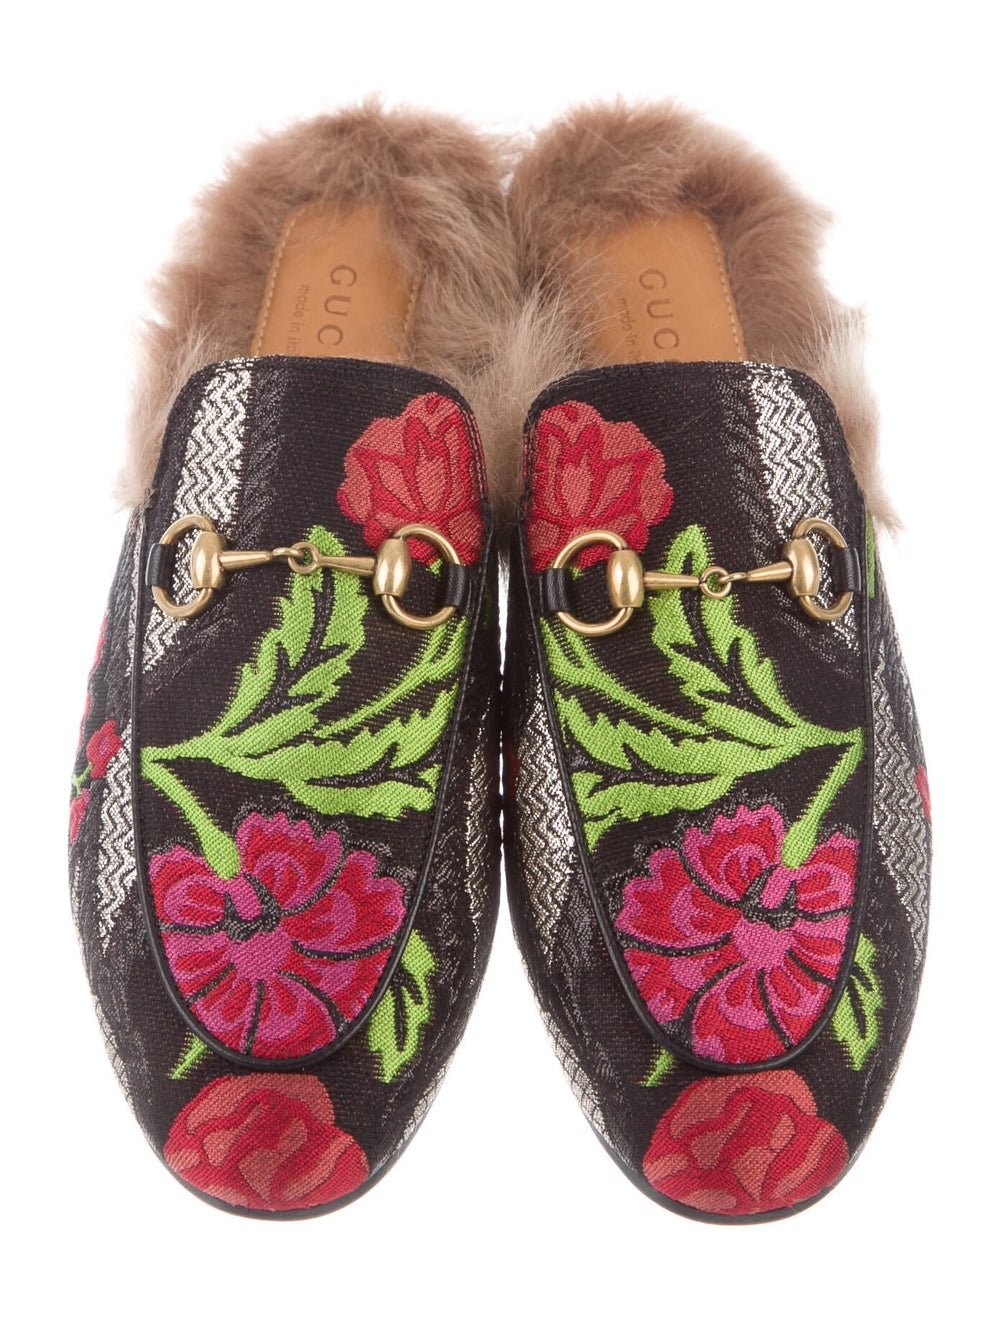 Gucci Princetown Floral Print Mules Black - image 3